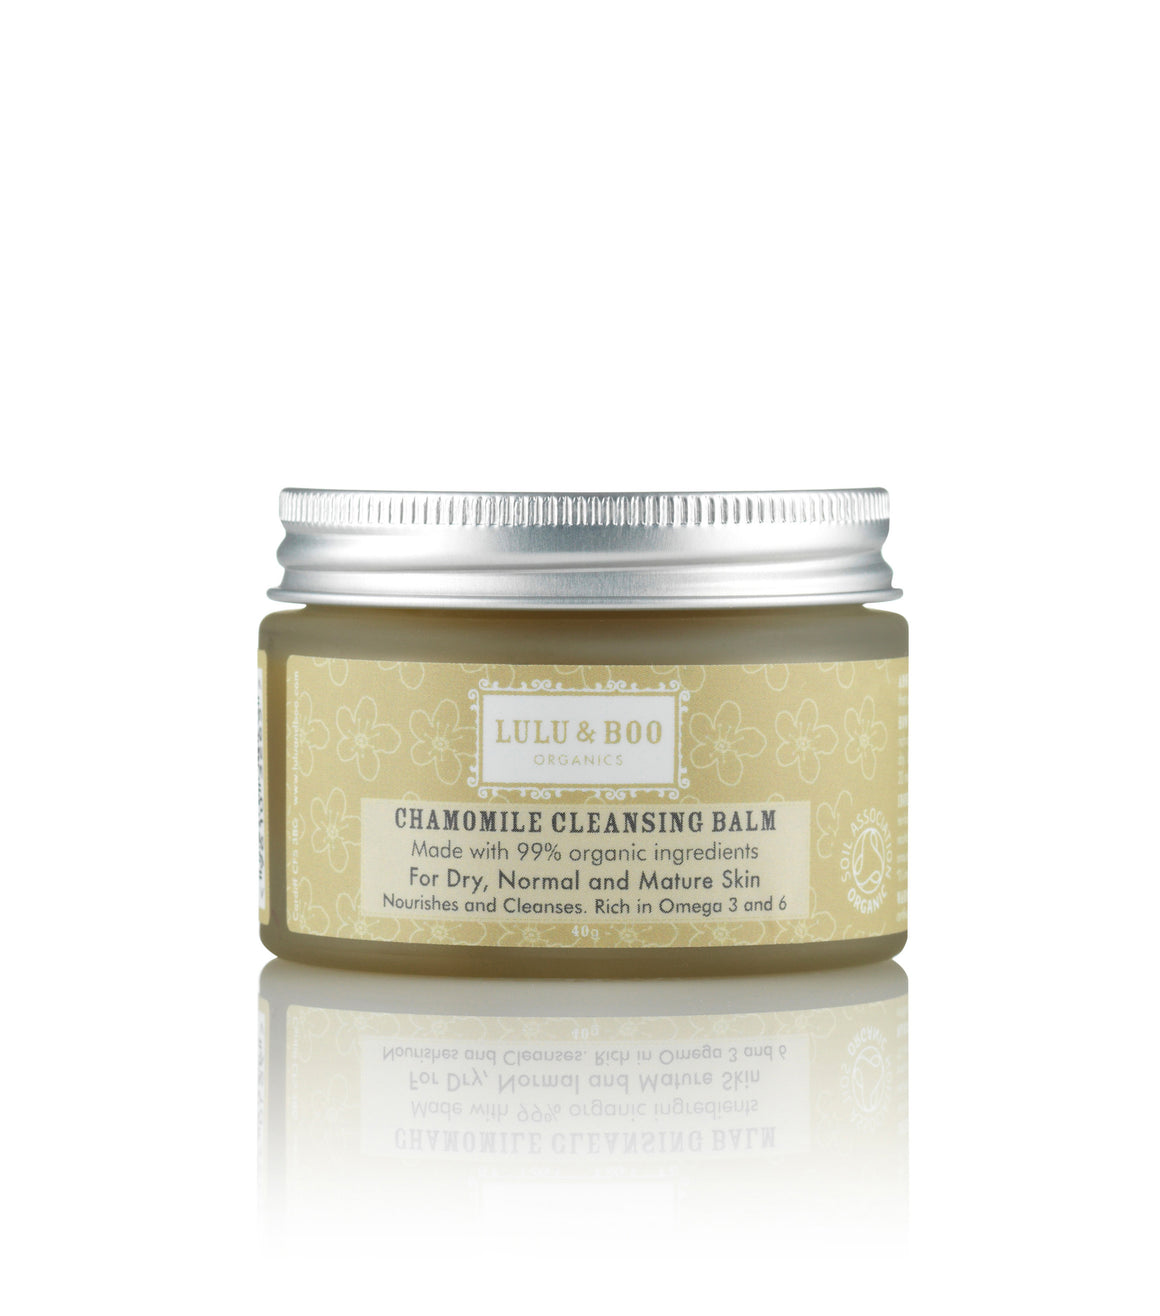 Chamomile Cleansing Balm Image